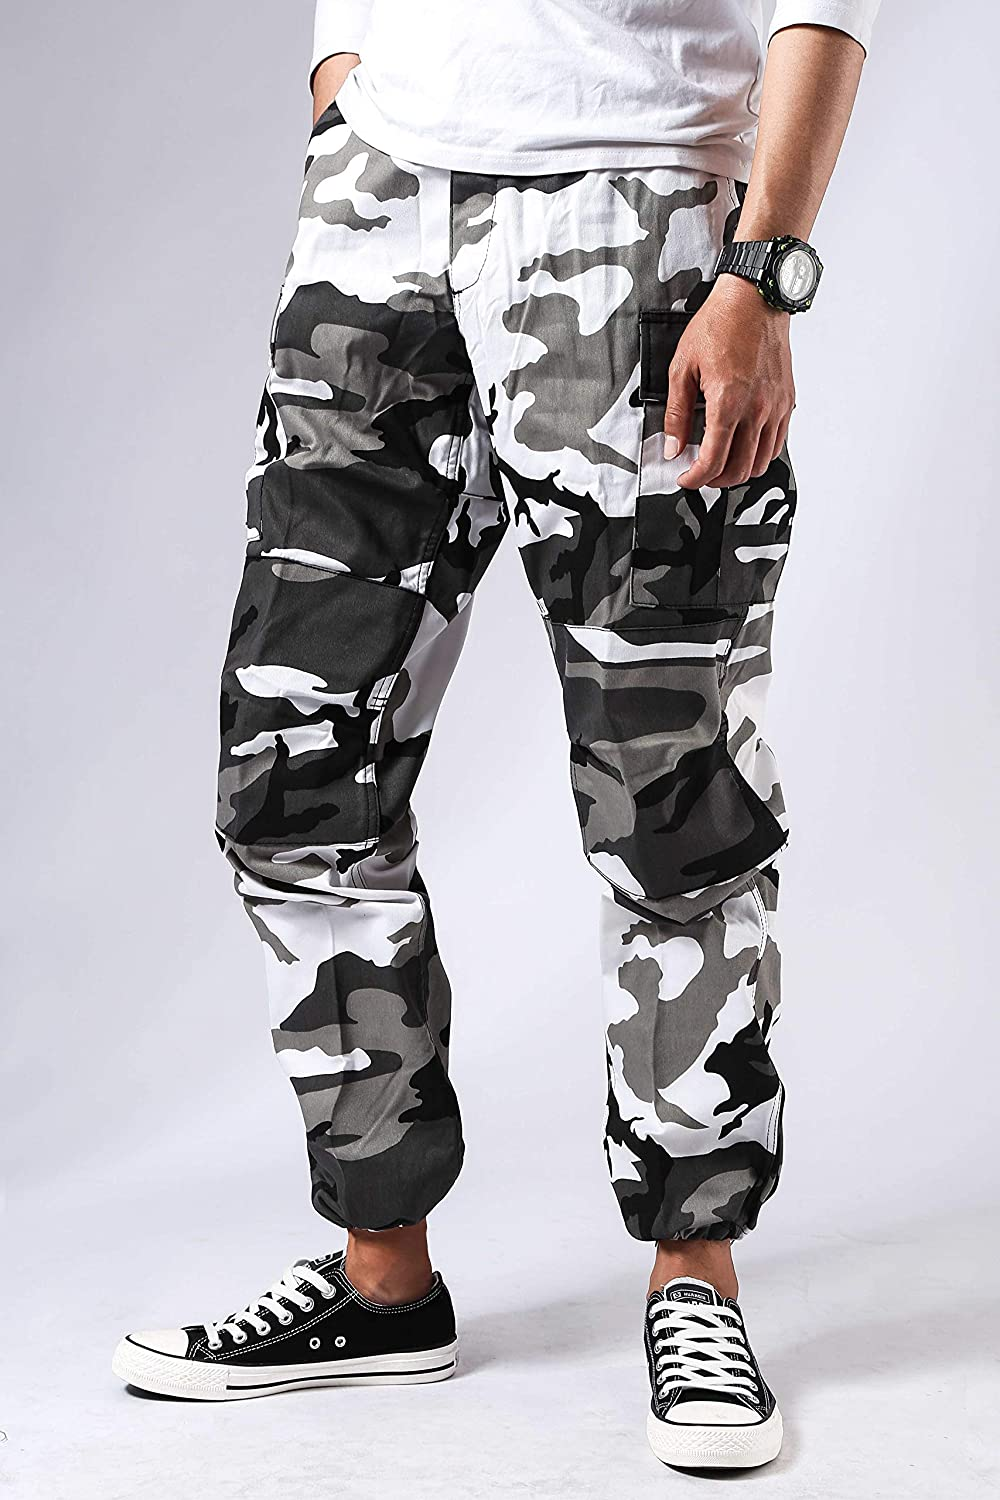 BACKBONE Mens Fashion Bright Camouflage Cargo Pants Military Combat Style BDU Pants